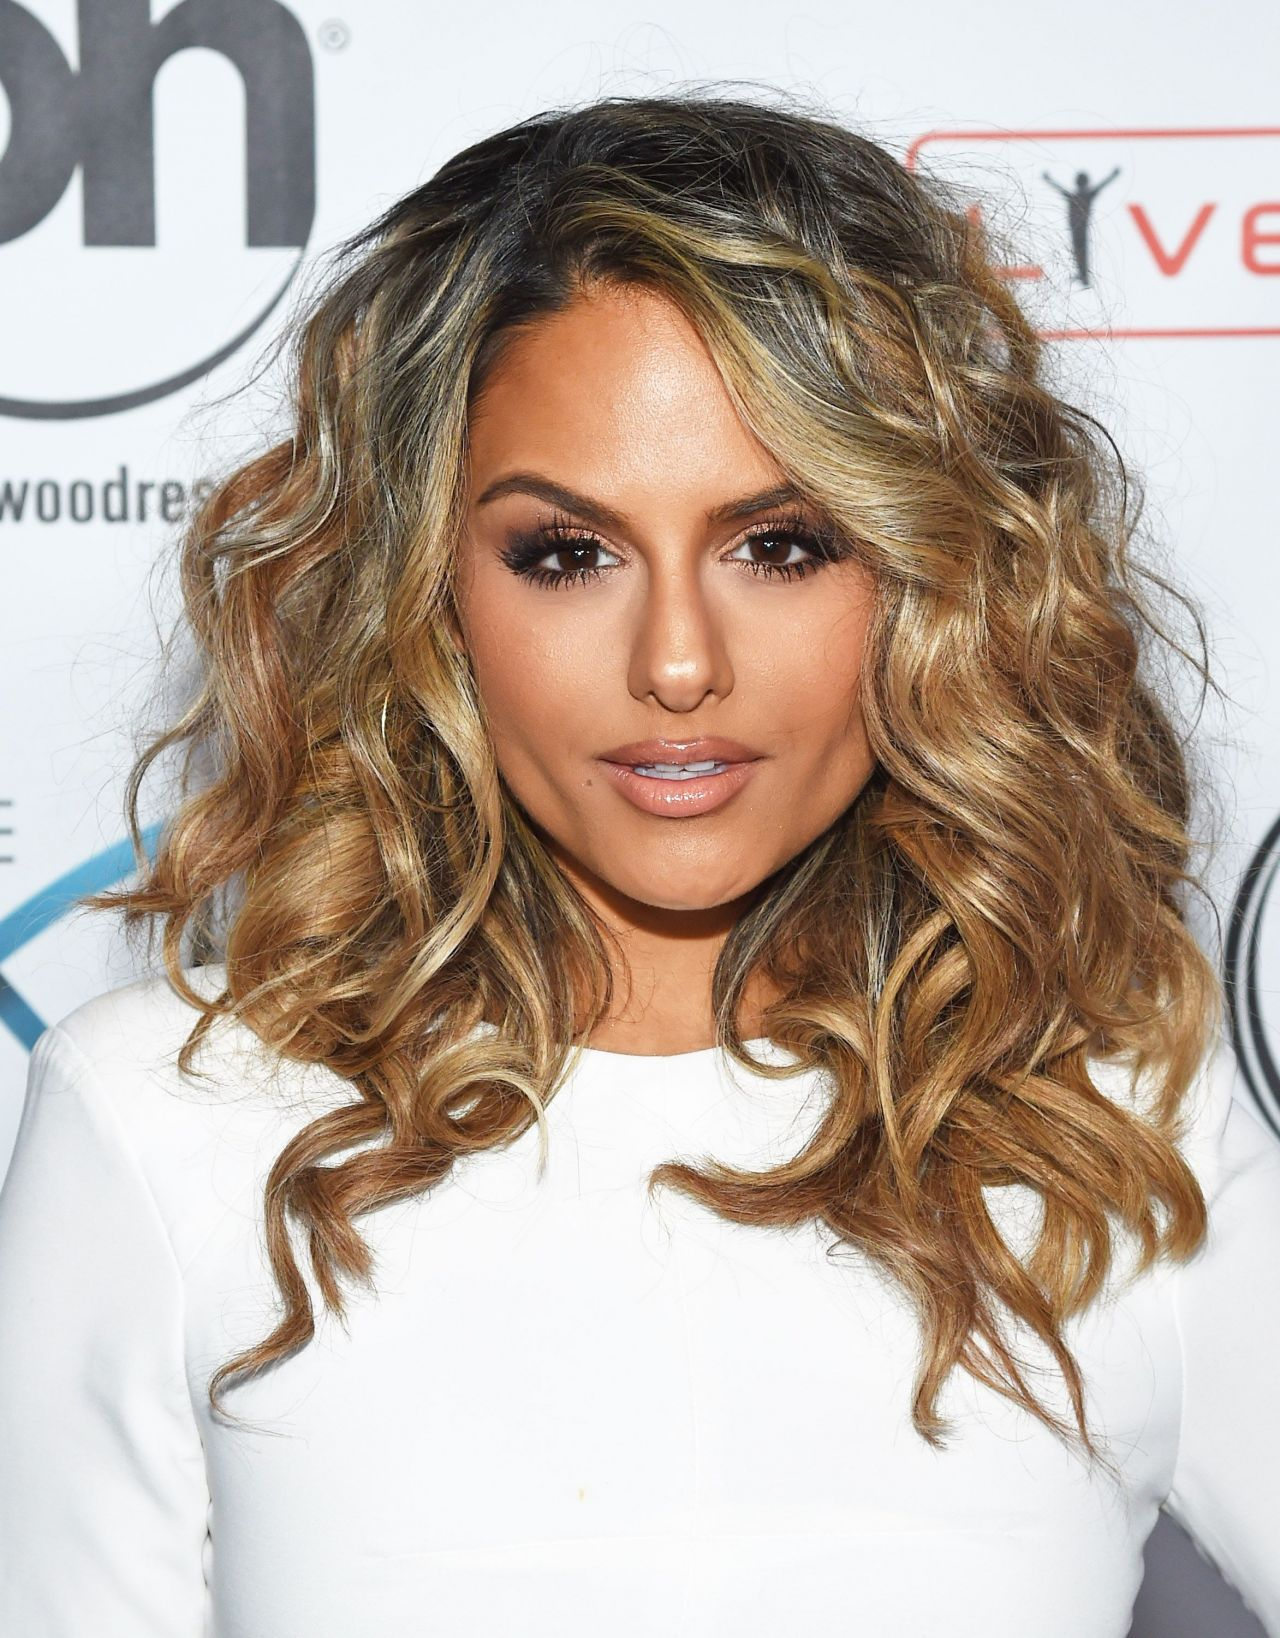 pia-toscano-jennifer-lopez-all-i-have-residency-launch-in-las-vegas-january-20-2016-4